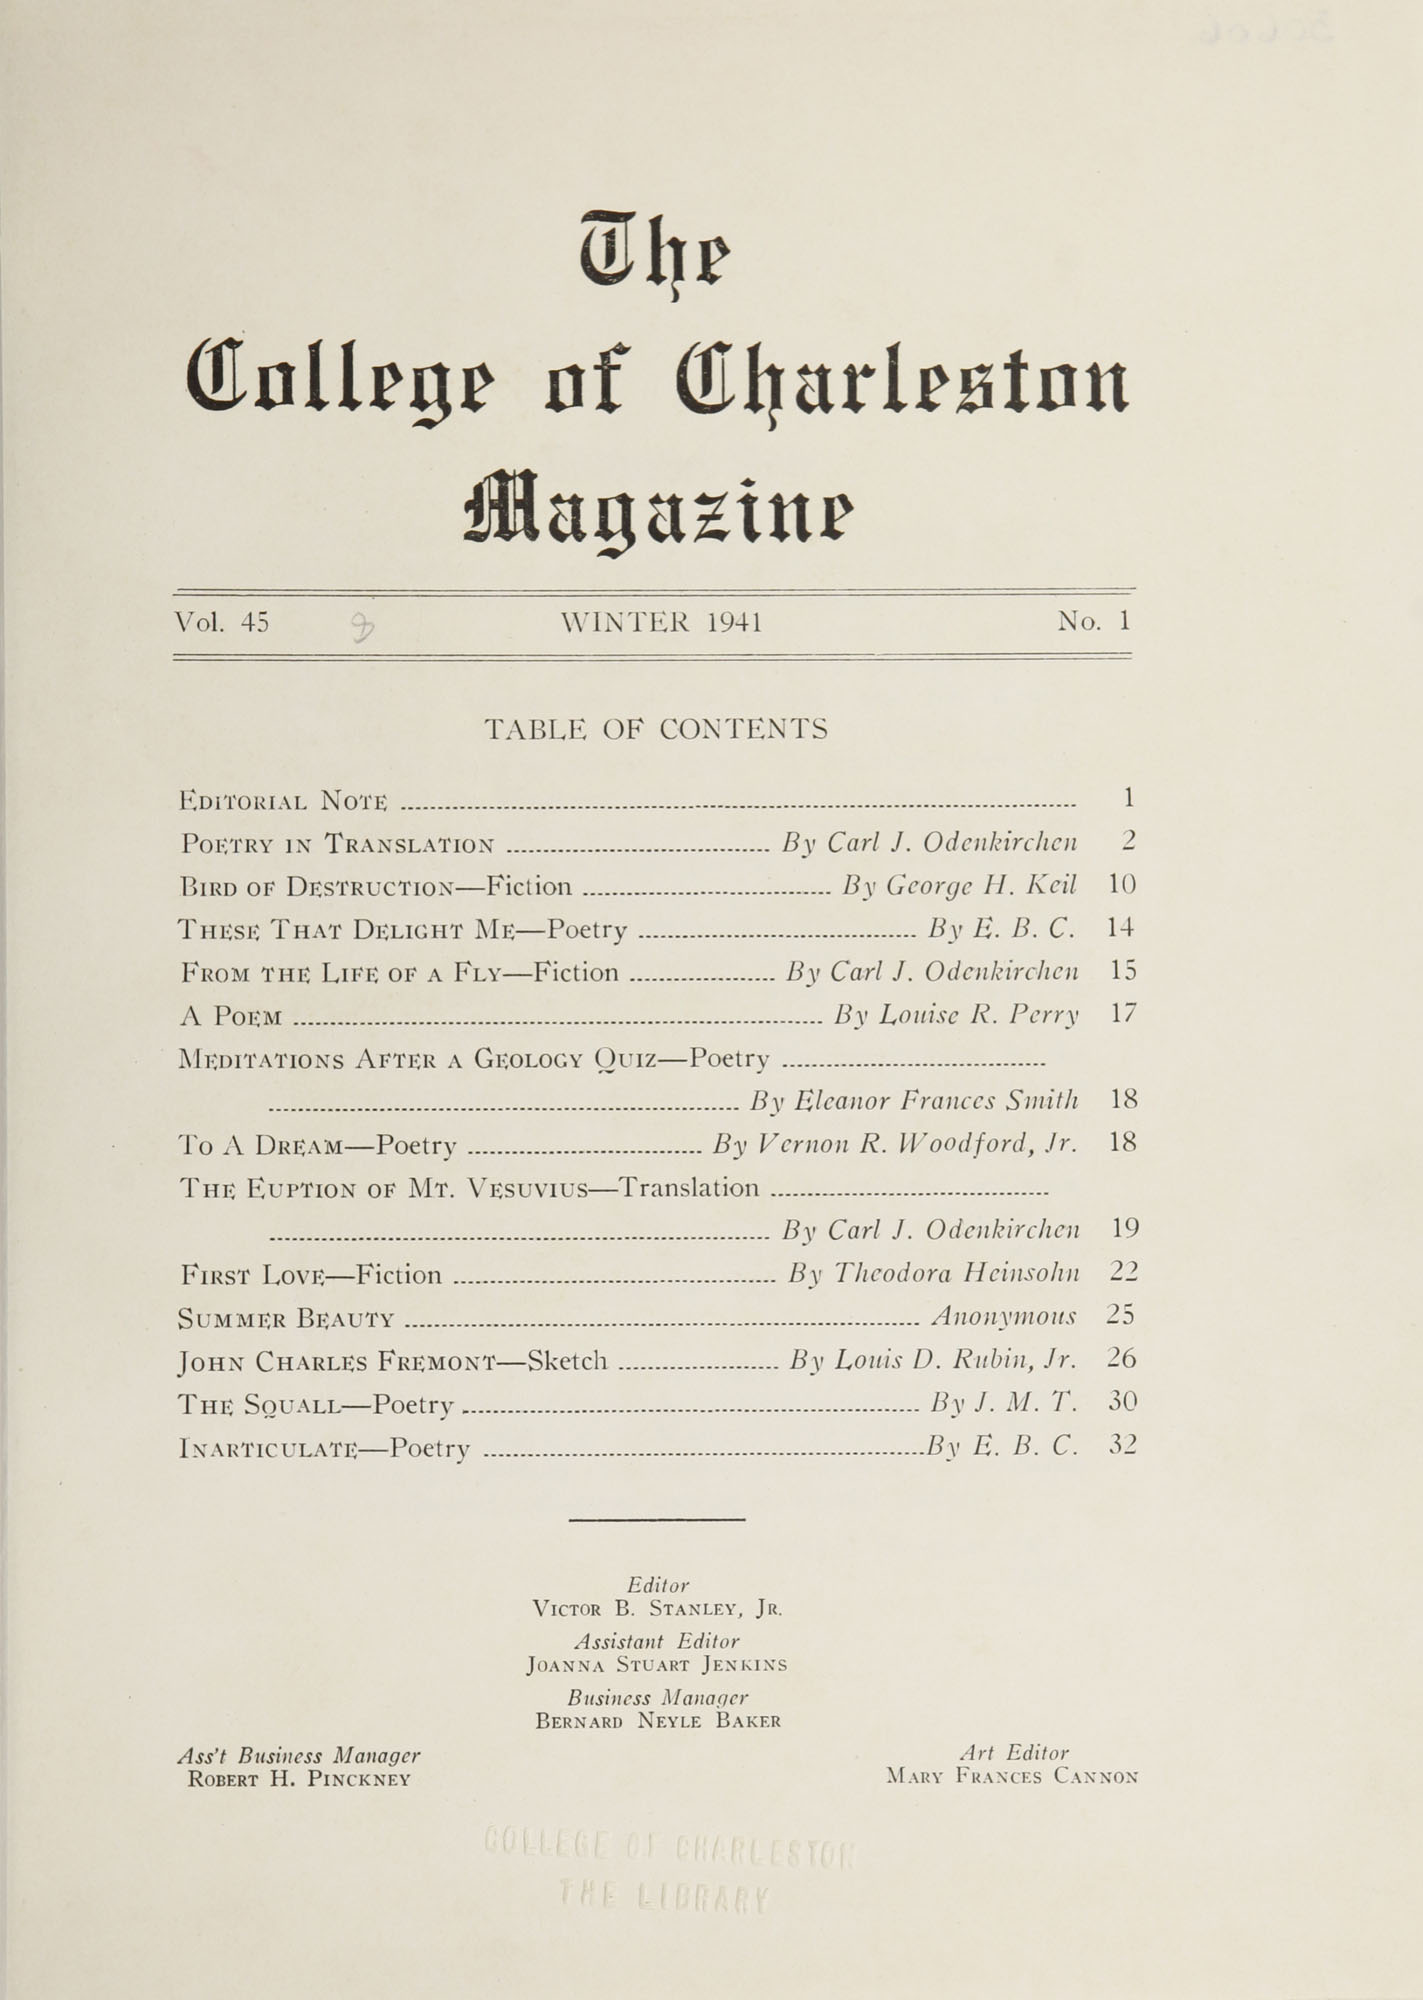 College of Charleston Magazine, 1941-1942, Vol. 45 No. 1, table of contents